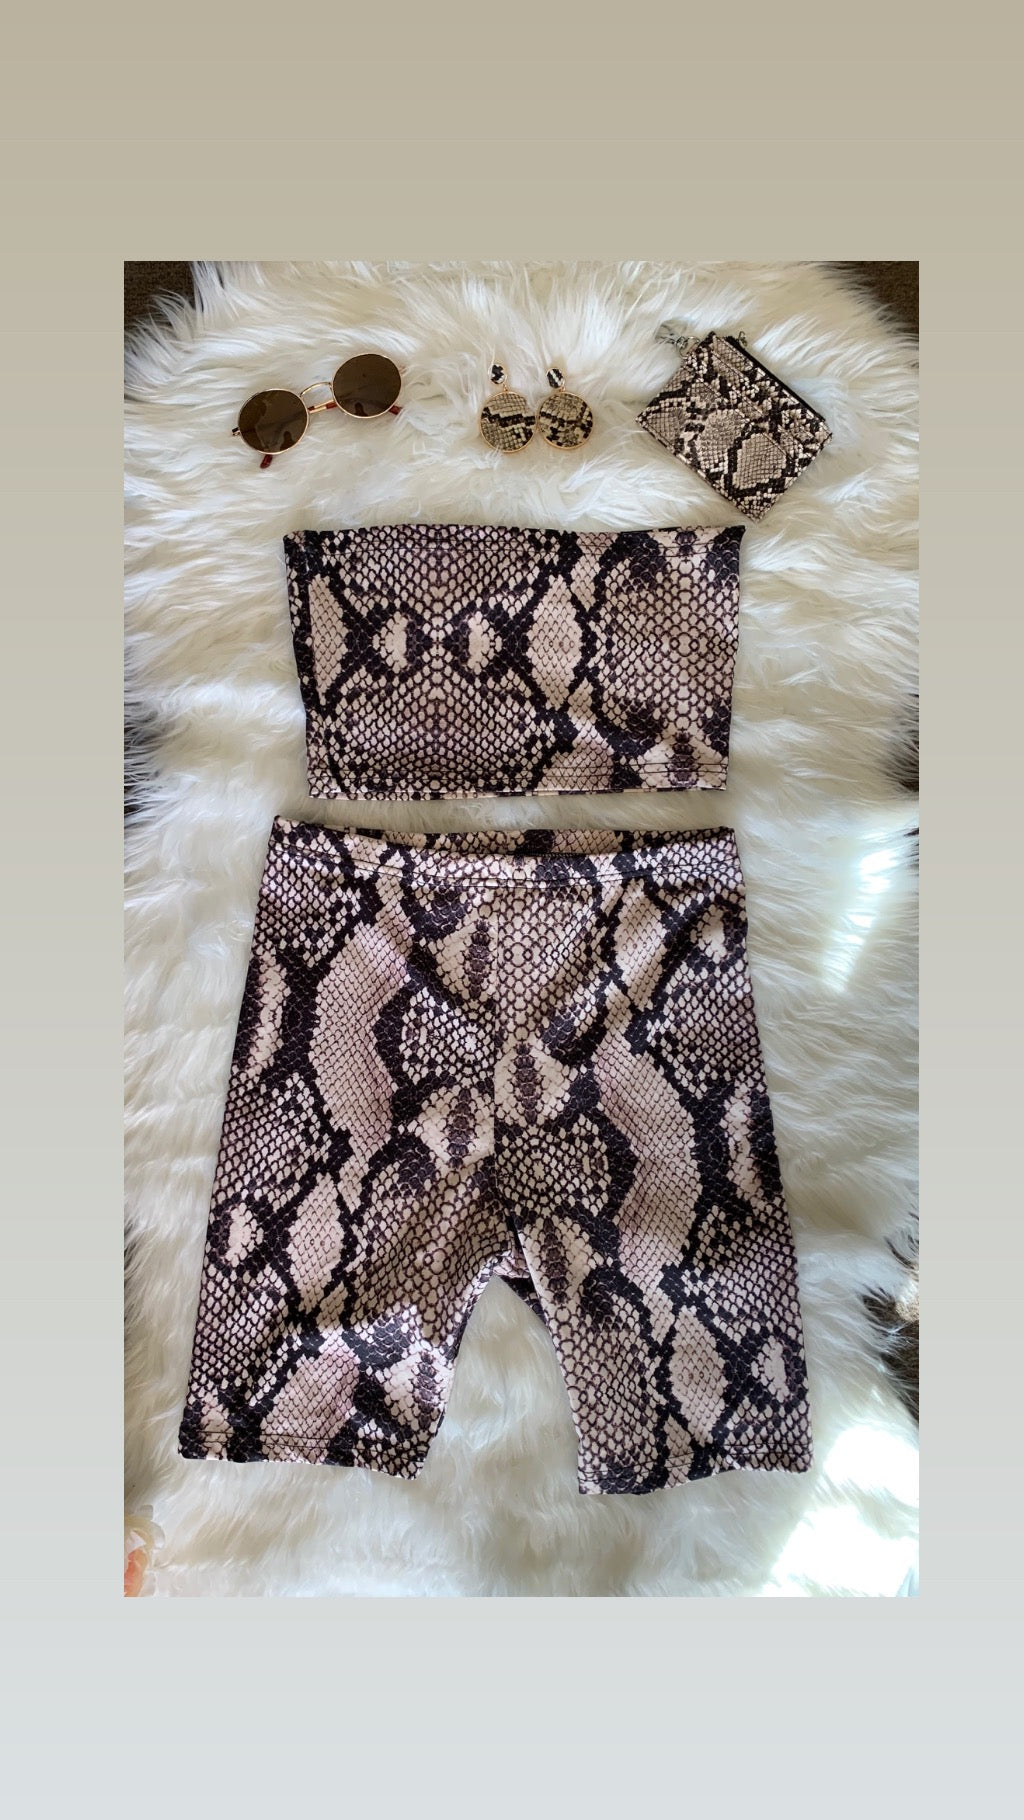 Cobra Crop + Shorts - Two Piece Set